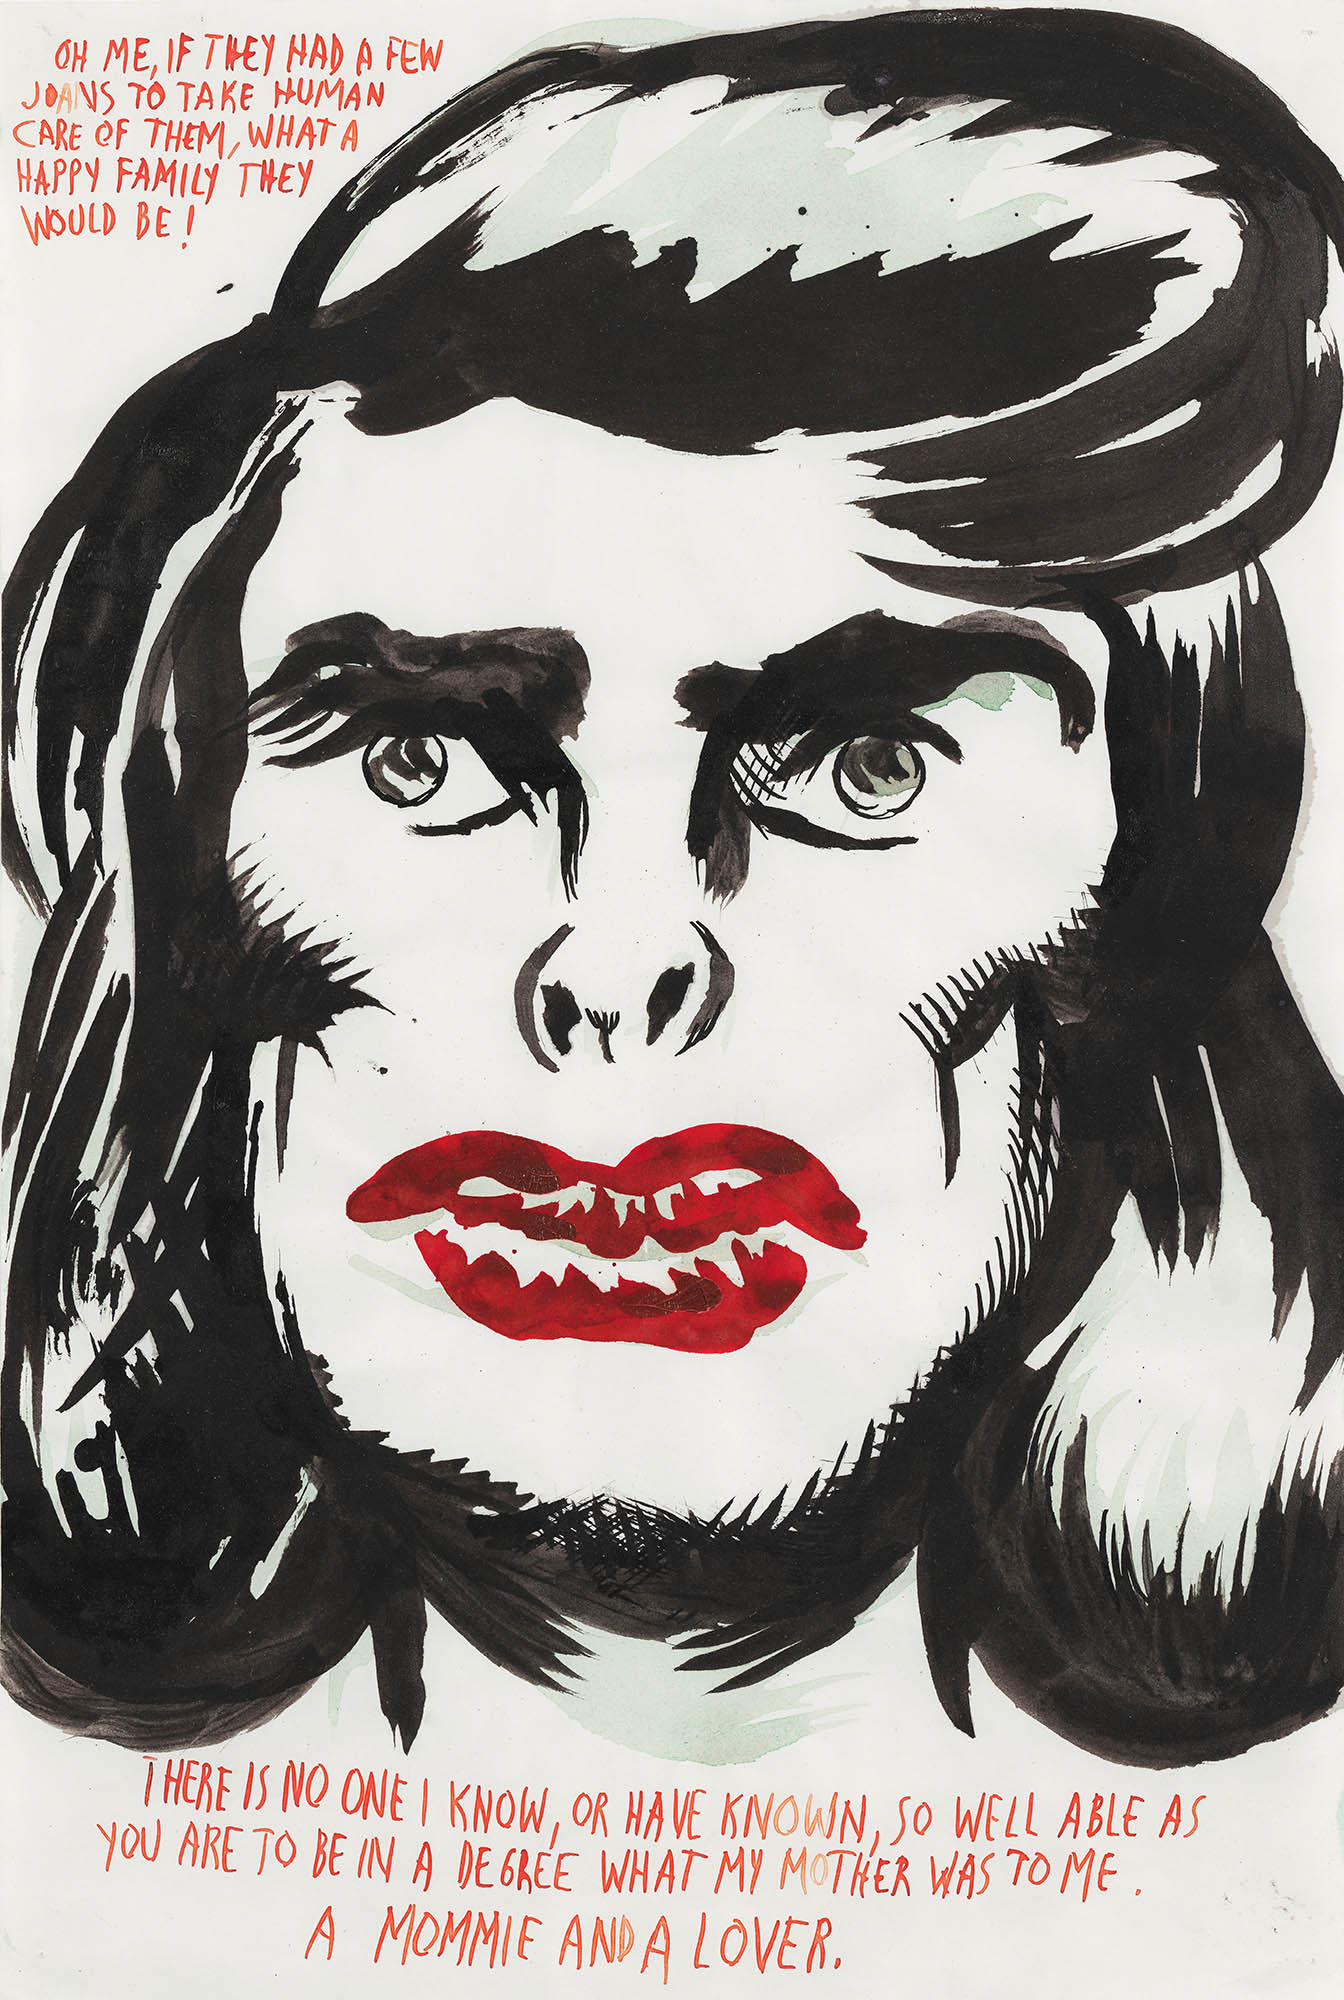 Image of Raymond Pettibon, Untitled (Oh, me if), 1997